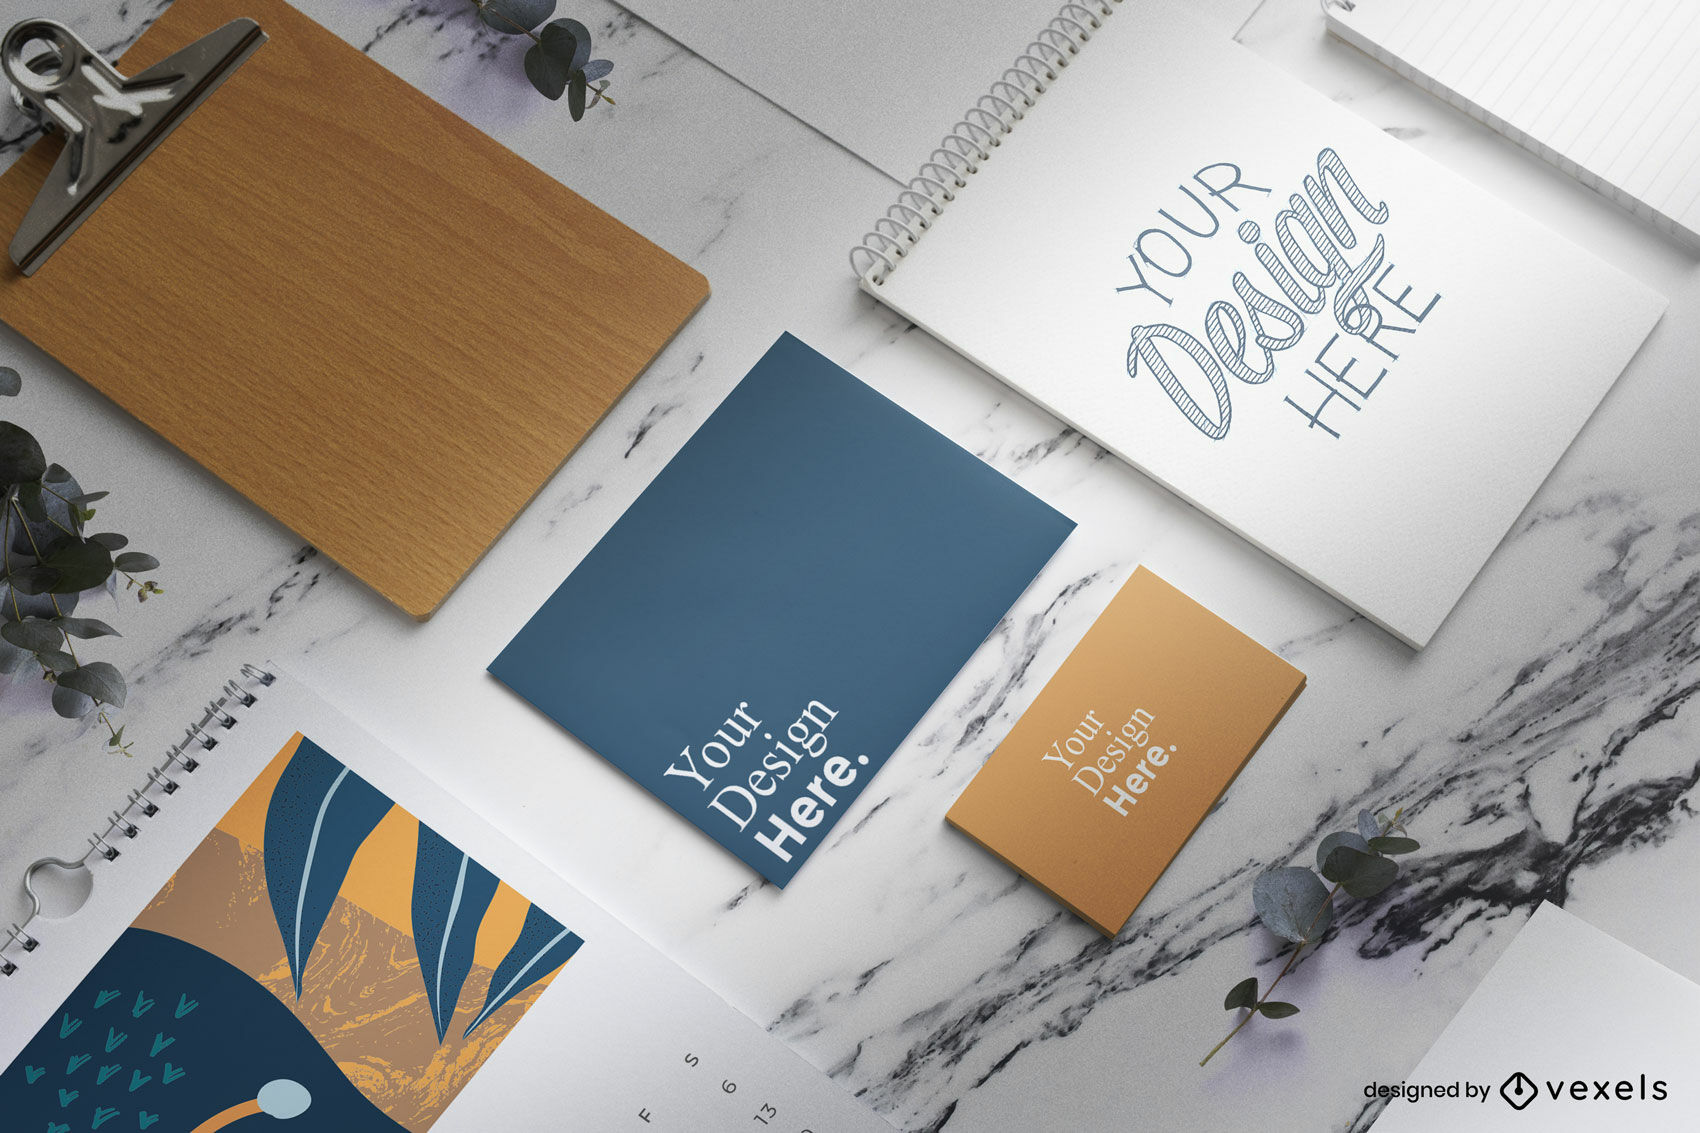 Stationary branding elements in marble table mockup